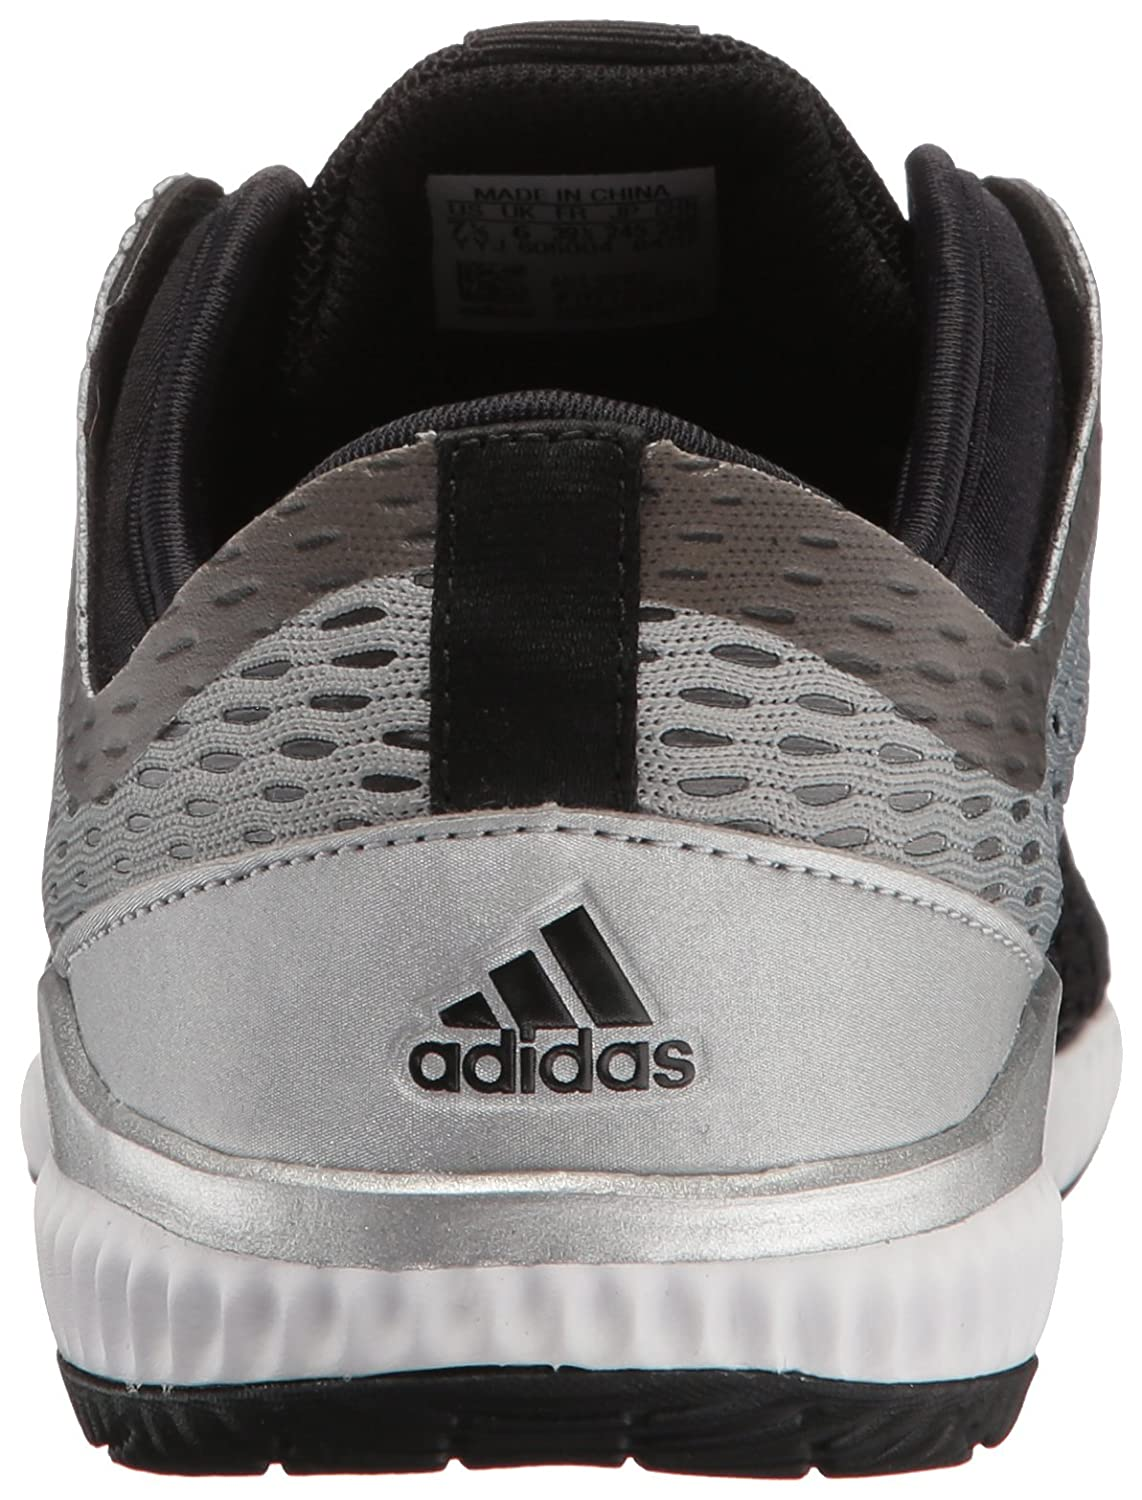 san francisco d7642 06625 Amazon.com  adidas Womens Crazytrain Pro W Cross Trainer  At